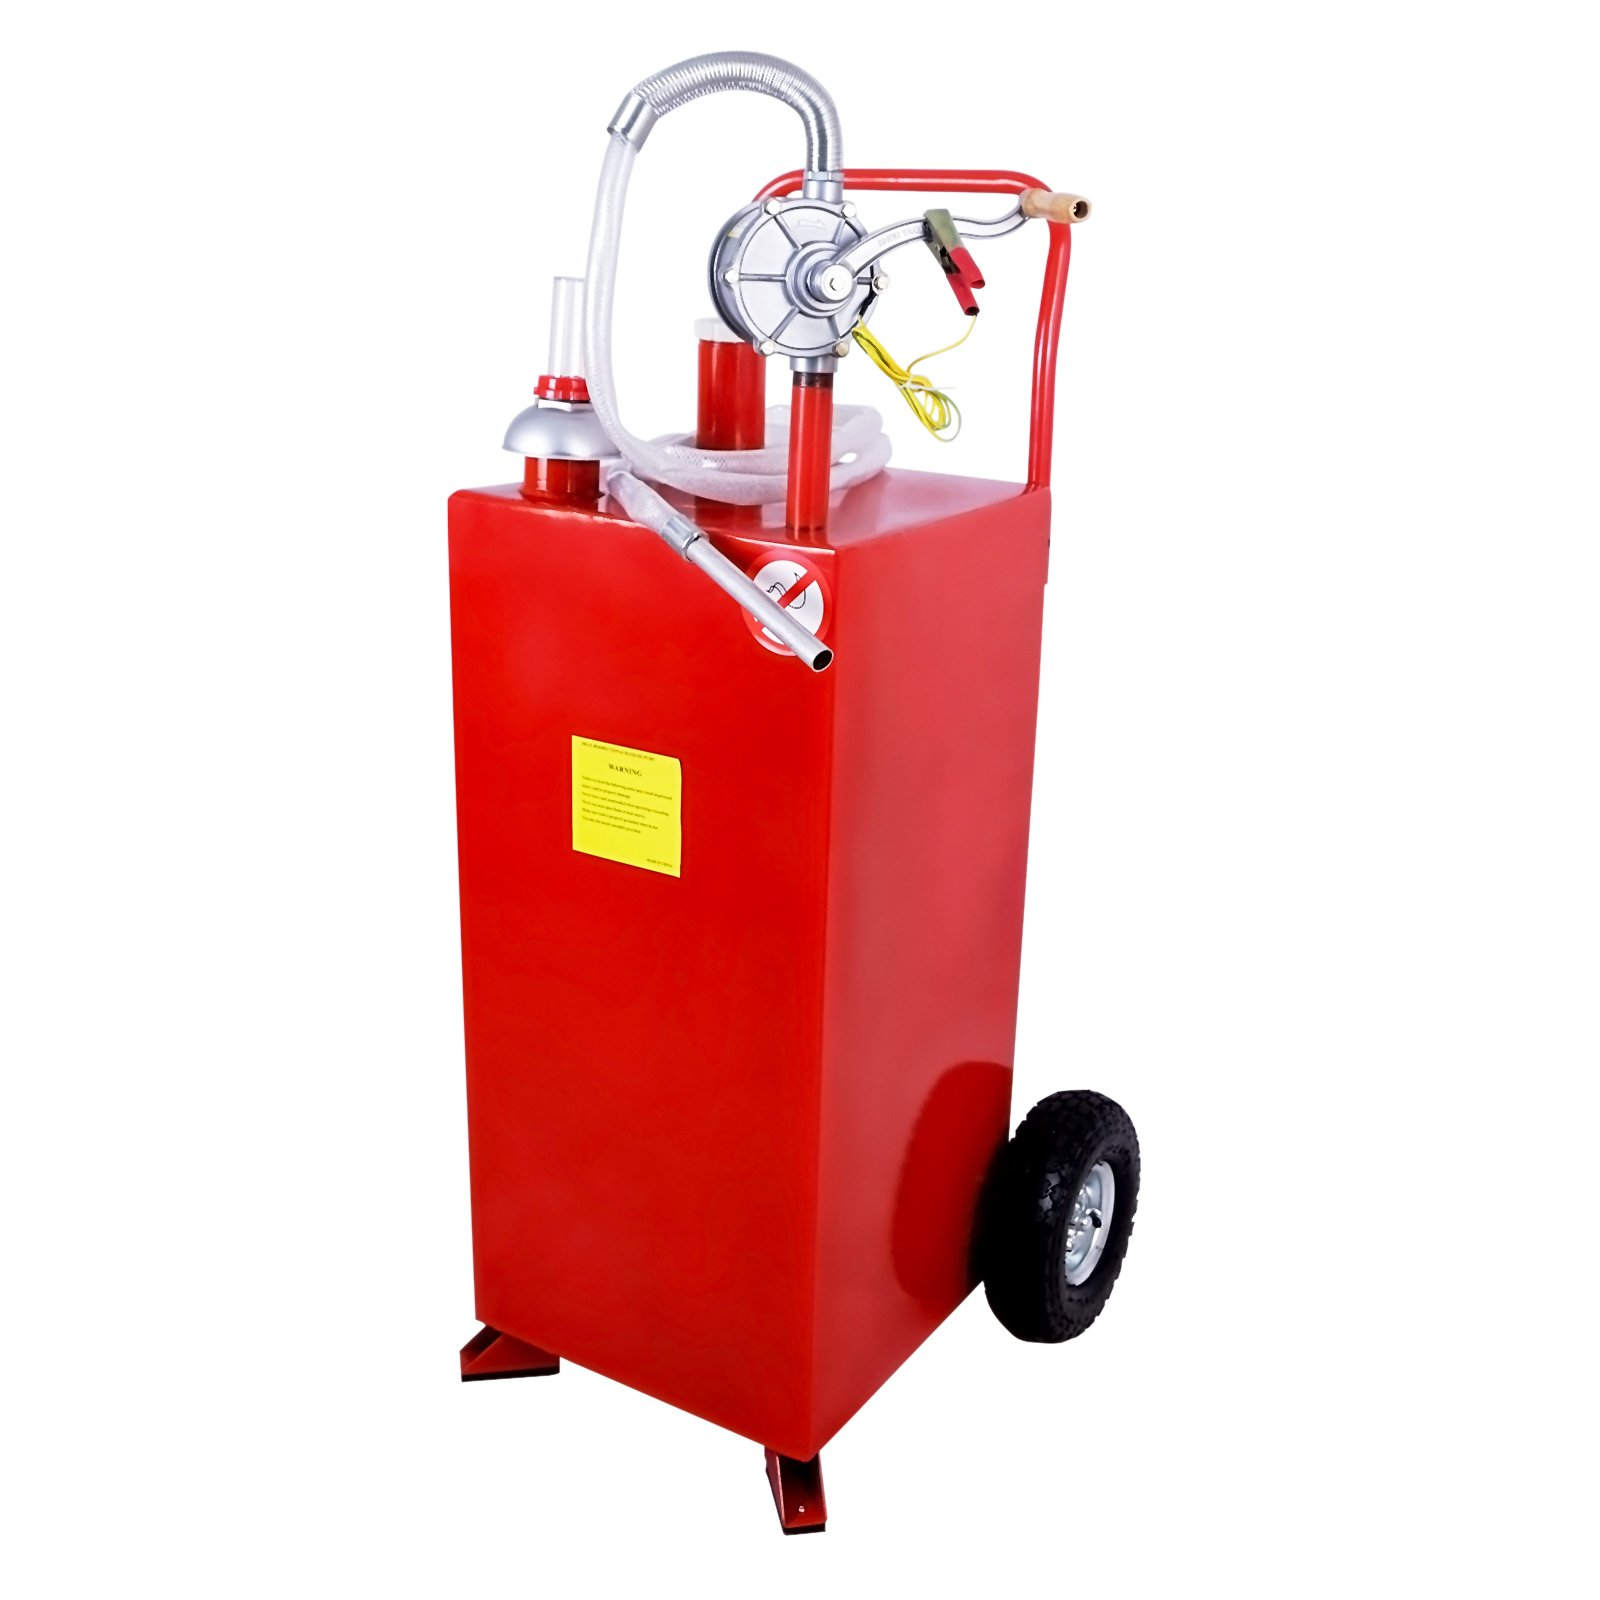 SUNCOO 30 Gallon Portable Gas Tank Diesel Fuel Caddy Storage Containers Pump & Hose Tube, Red